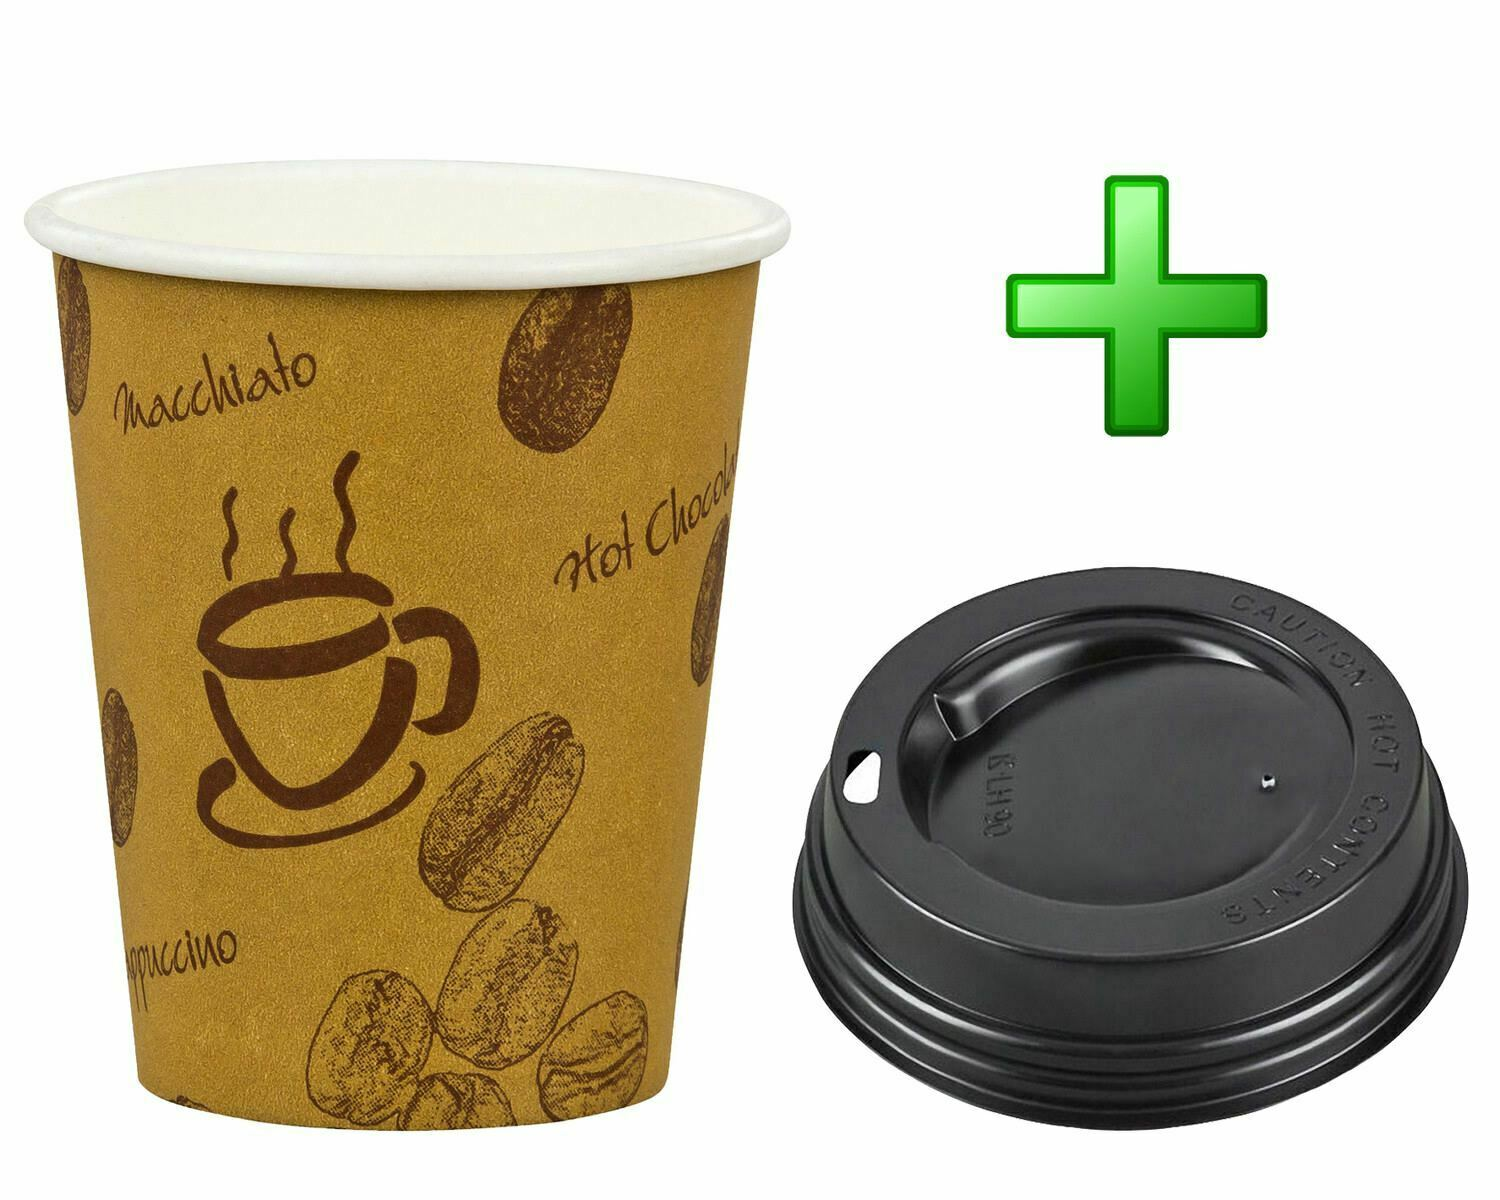 kaffeebecher premium coffee to go mit deckel pappbecher beschichtet 300 ml eur 11 80 picclick de. Black Bedroom Furniture Sets. Home Design Ideas